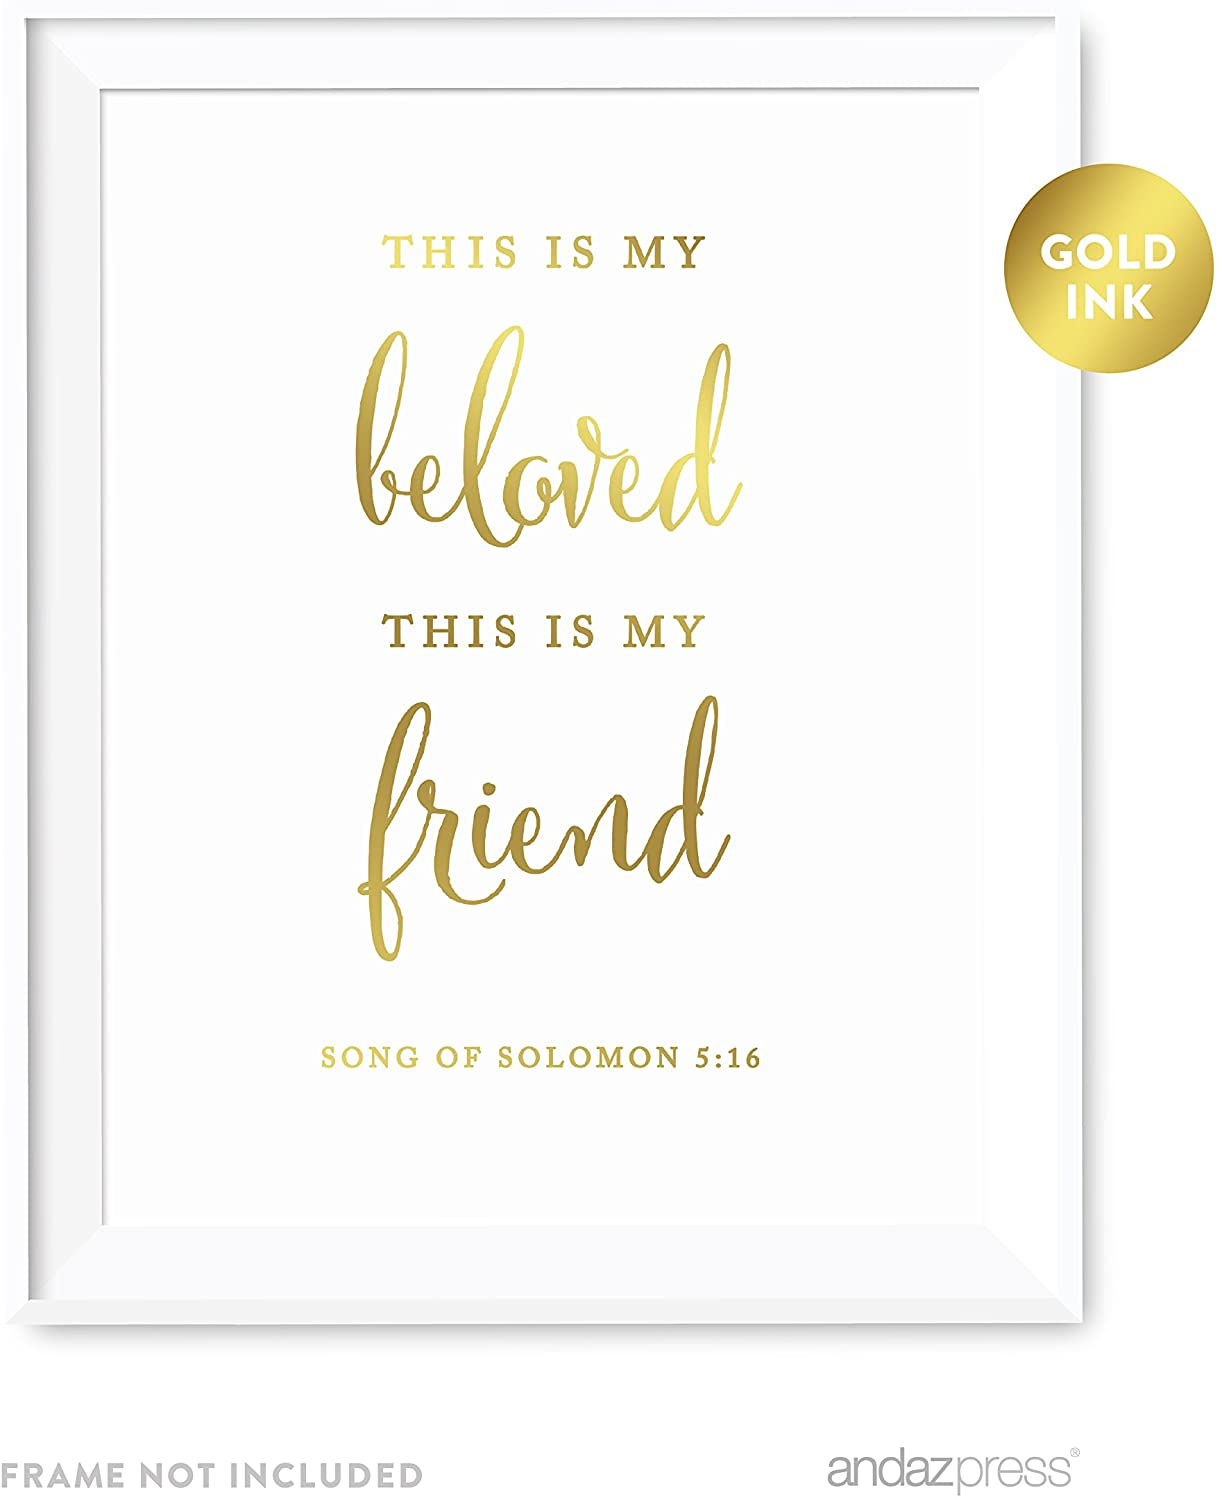 Andaz Press Biblical Wedding Love Quote Wall Art, Metallic Gold Ink Print Poster, 8.5-inch x 11-inch, This is My Beloved and This is My Friend, Song of Solomon 5:16, 1-Pack